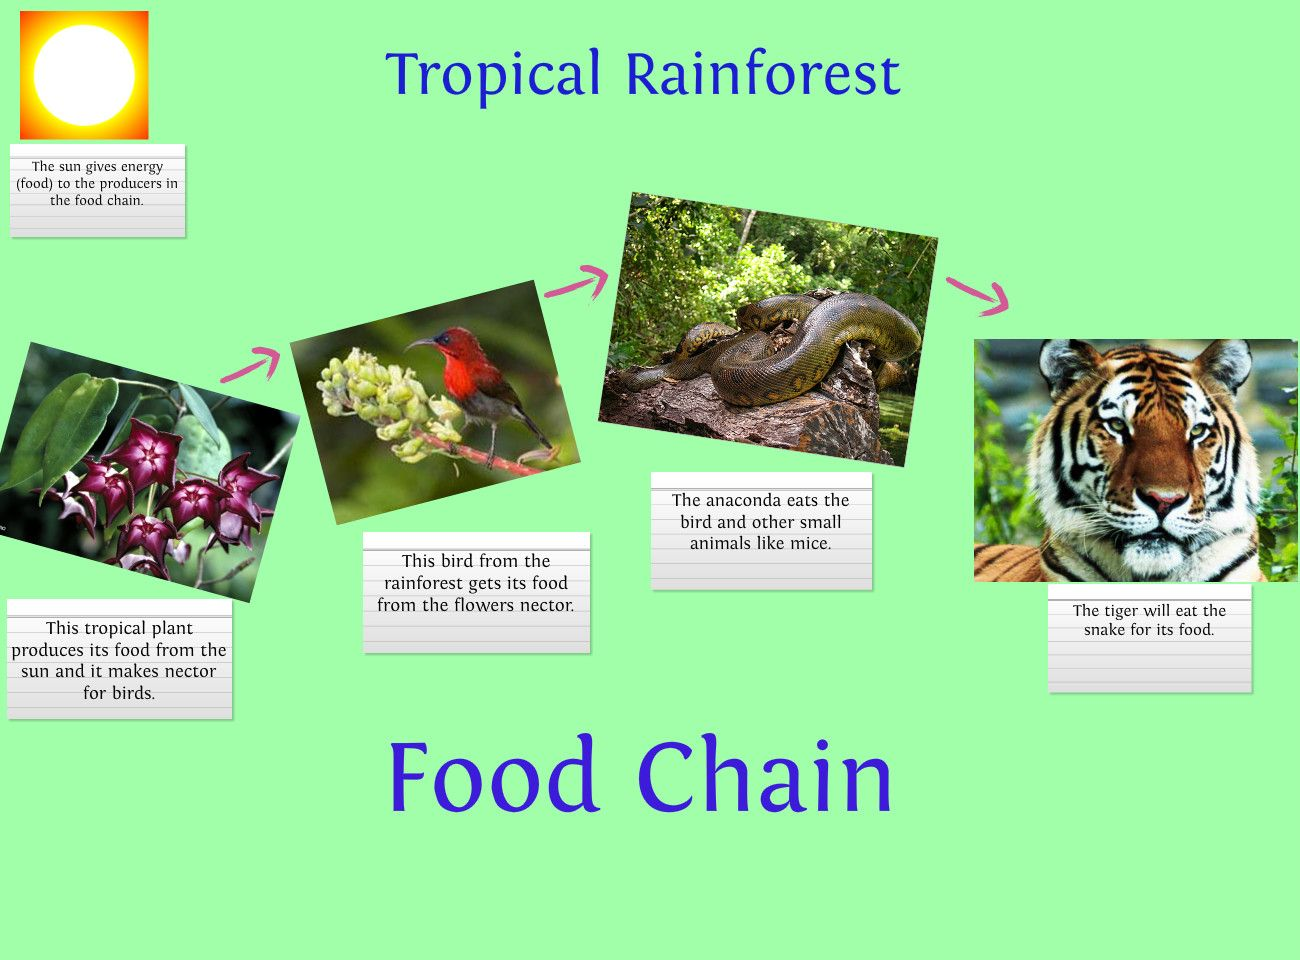 Food Chain For Tropical Rainforest Animals | Food